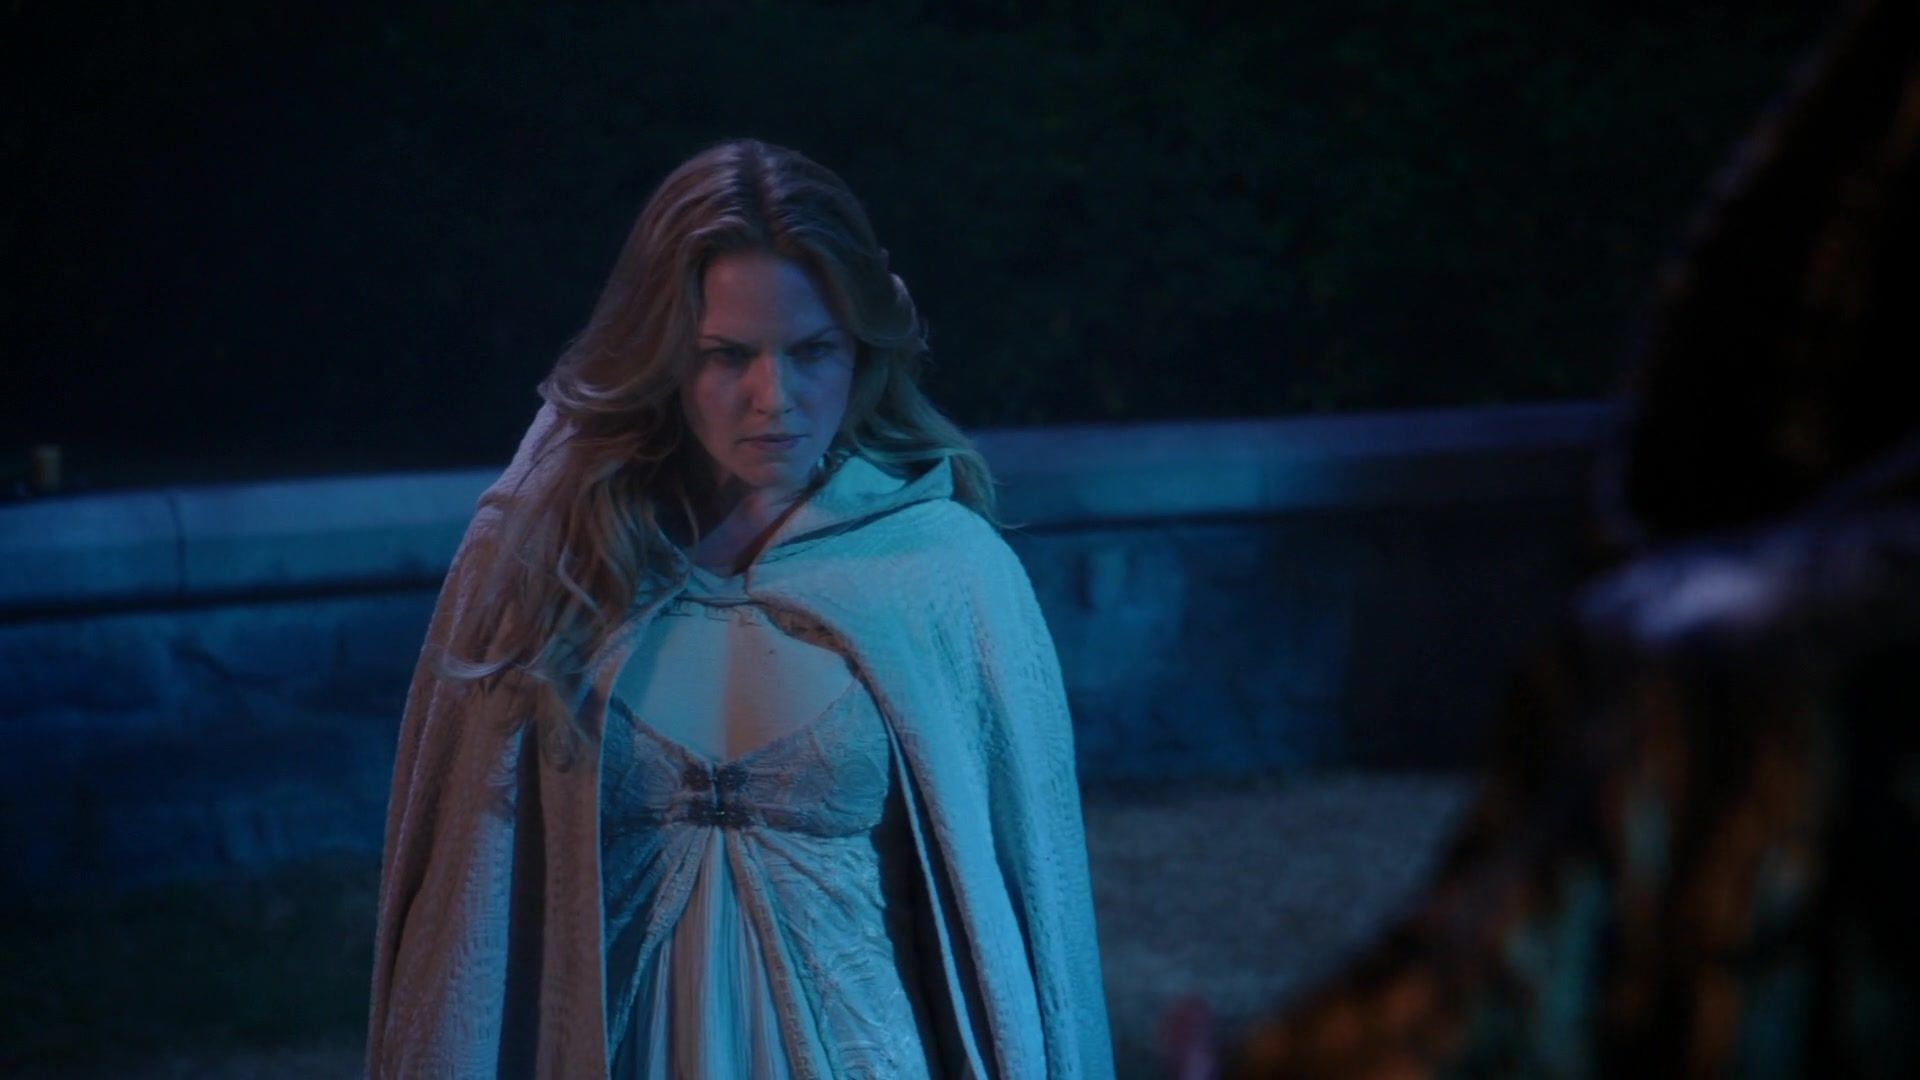 Last viewed - Once Upon a Time S05E05 1080p 2192 - Once Upon a Time High Quality Screencaps Gallery